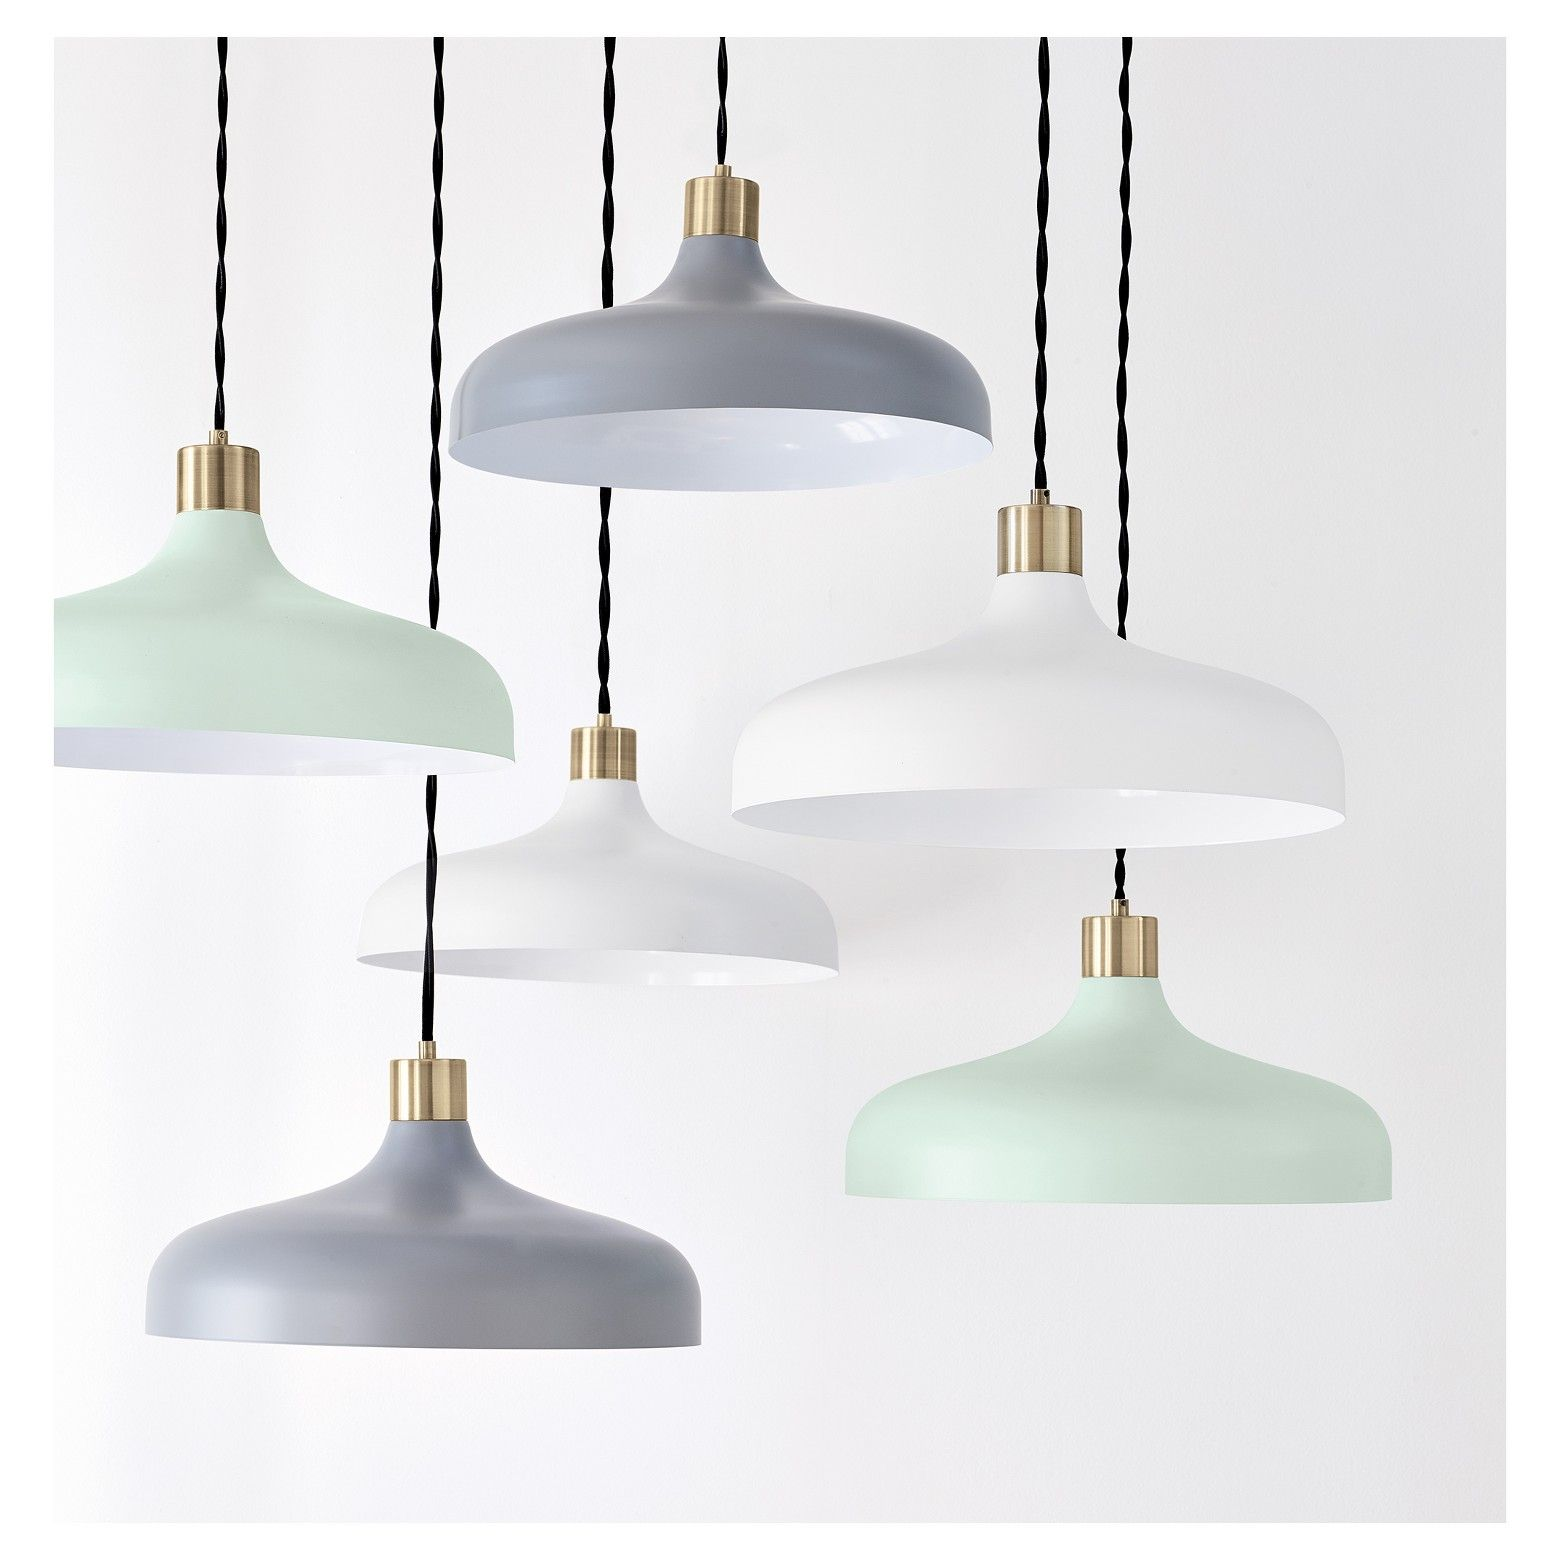 crosby collection large pendant light.  Collection Thresholdu0027s Crosby Collection Large Pendant Light Brings A Modern Look To  Your Lighting Itu0027s Perfect Throughout Pinterest